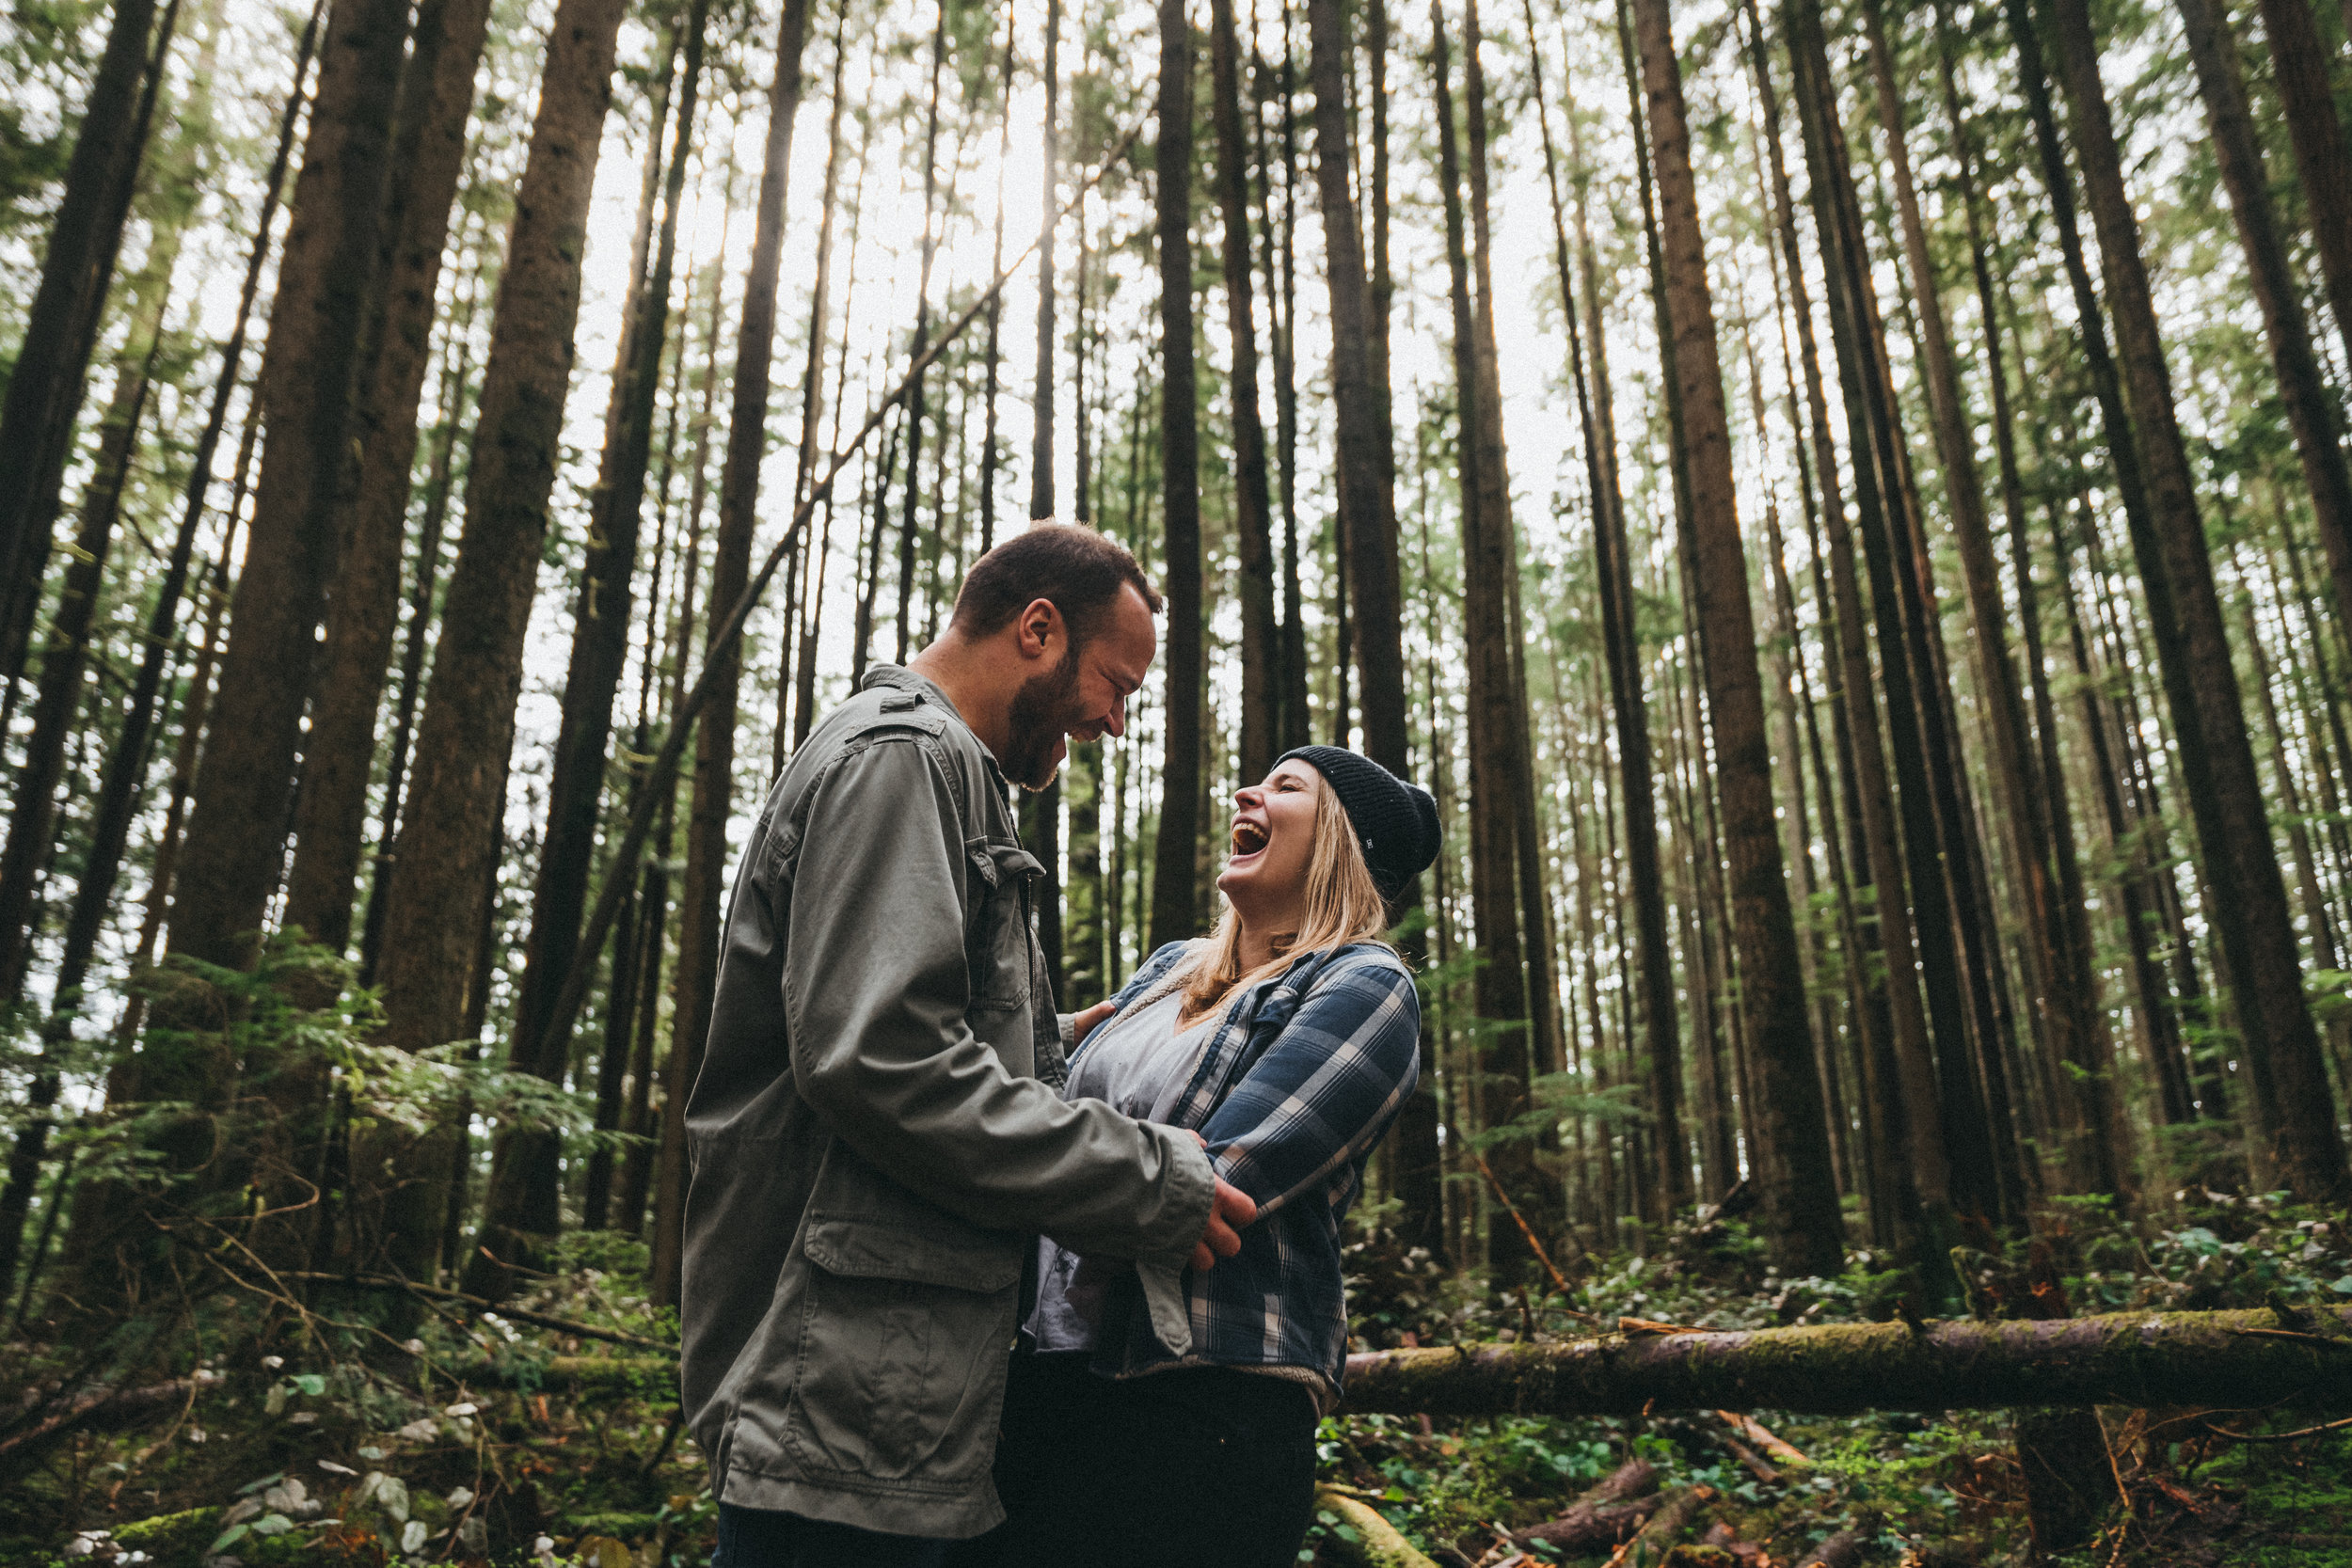 Jody & brendan - An engagement session in the lush forests of North Vancouver, plus a giant waterfall